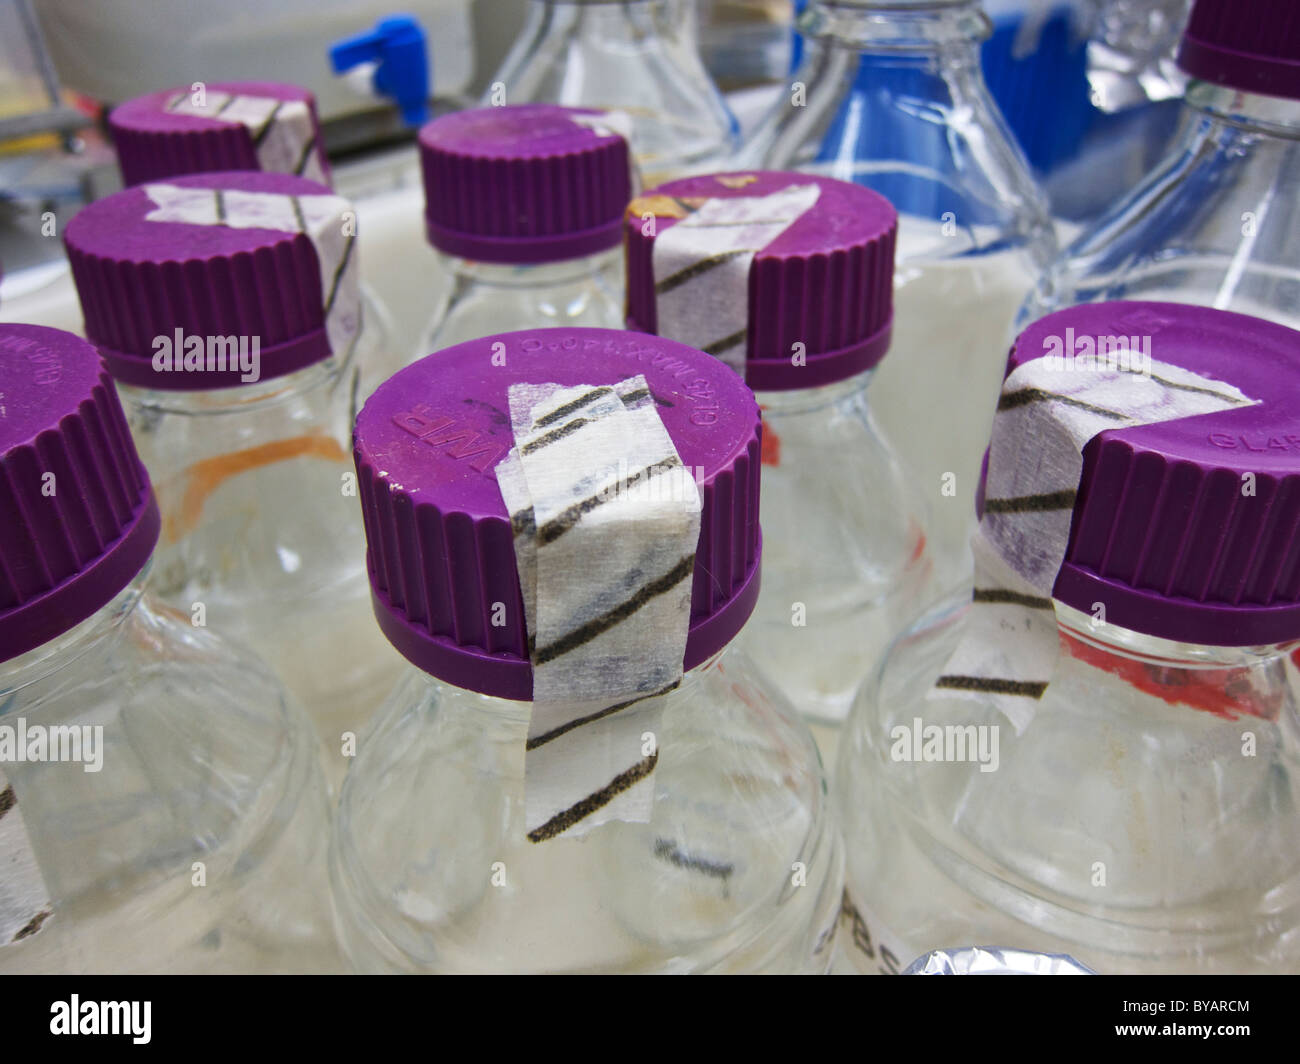 Laboratory glassware after autoclaving. Autoclave indicator tape on covers and caps. - Stock Image